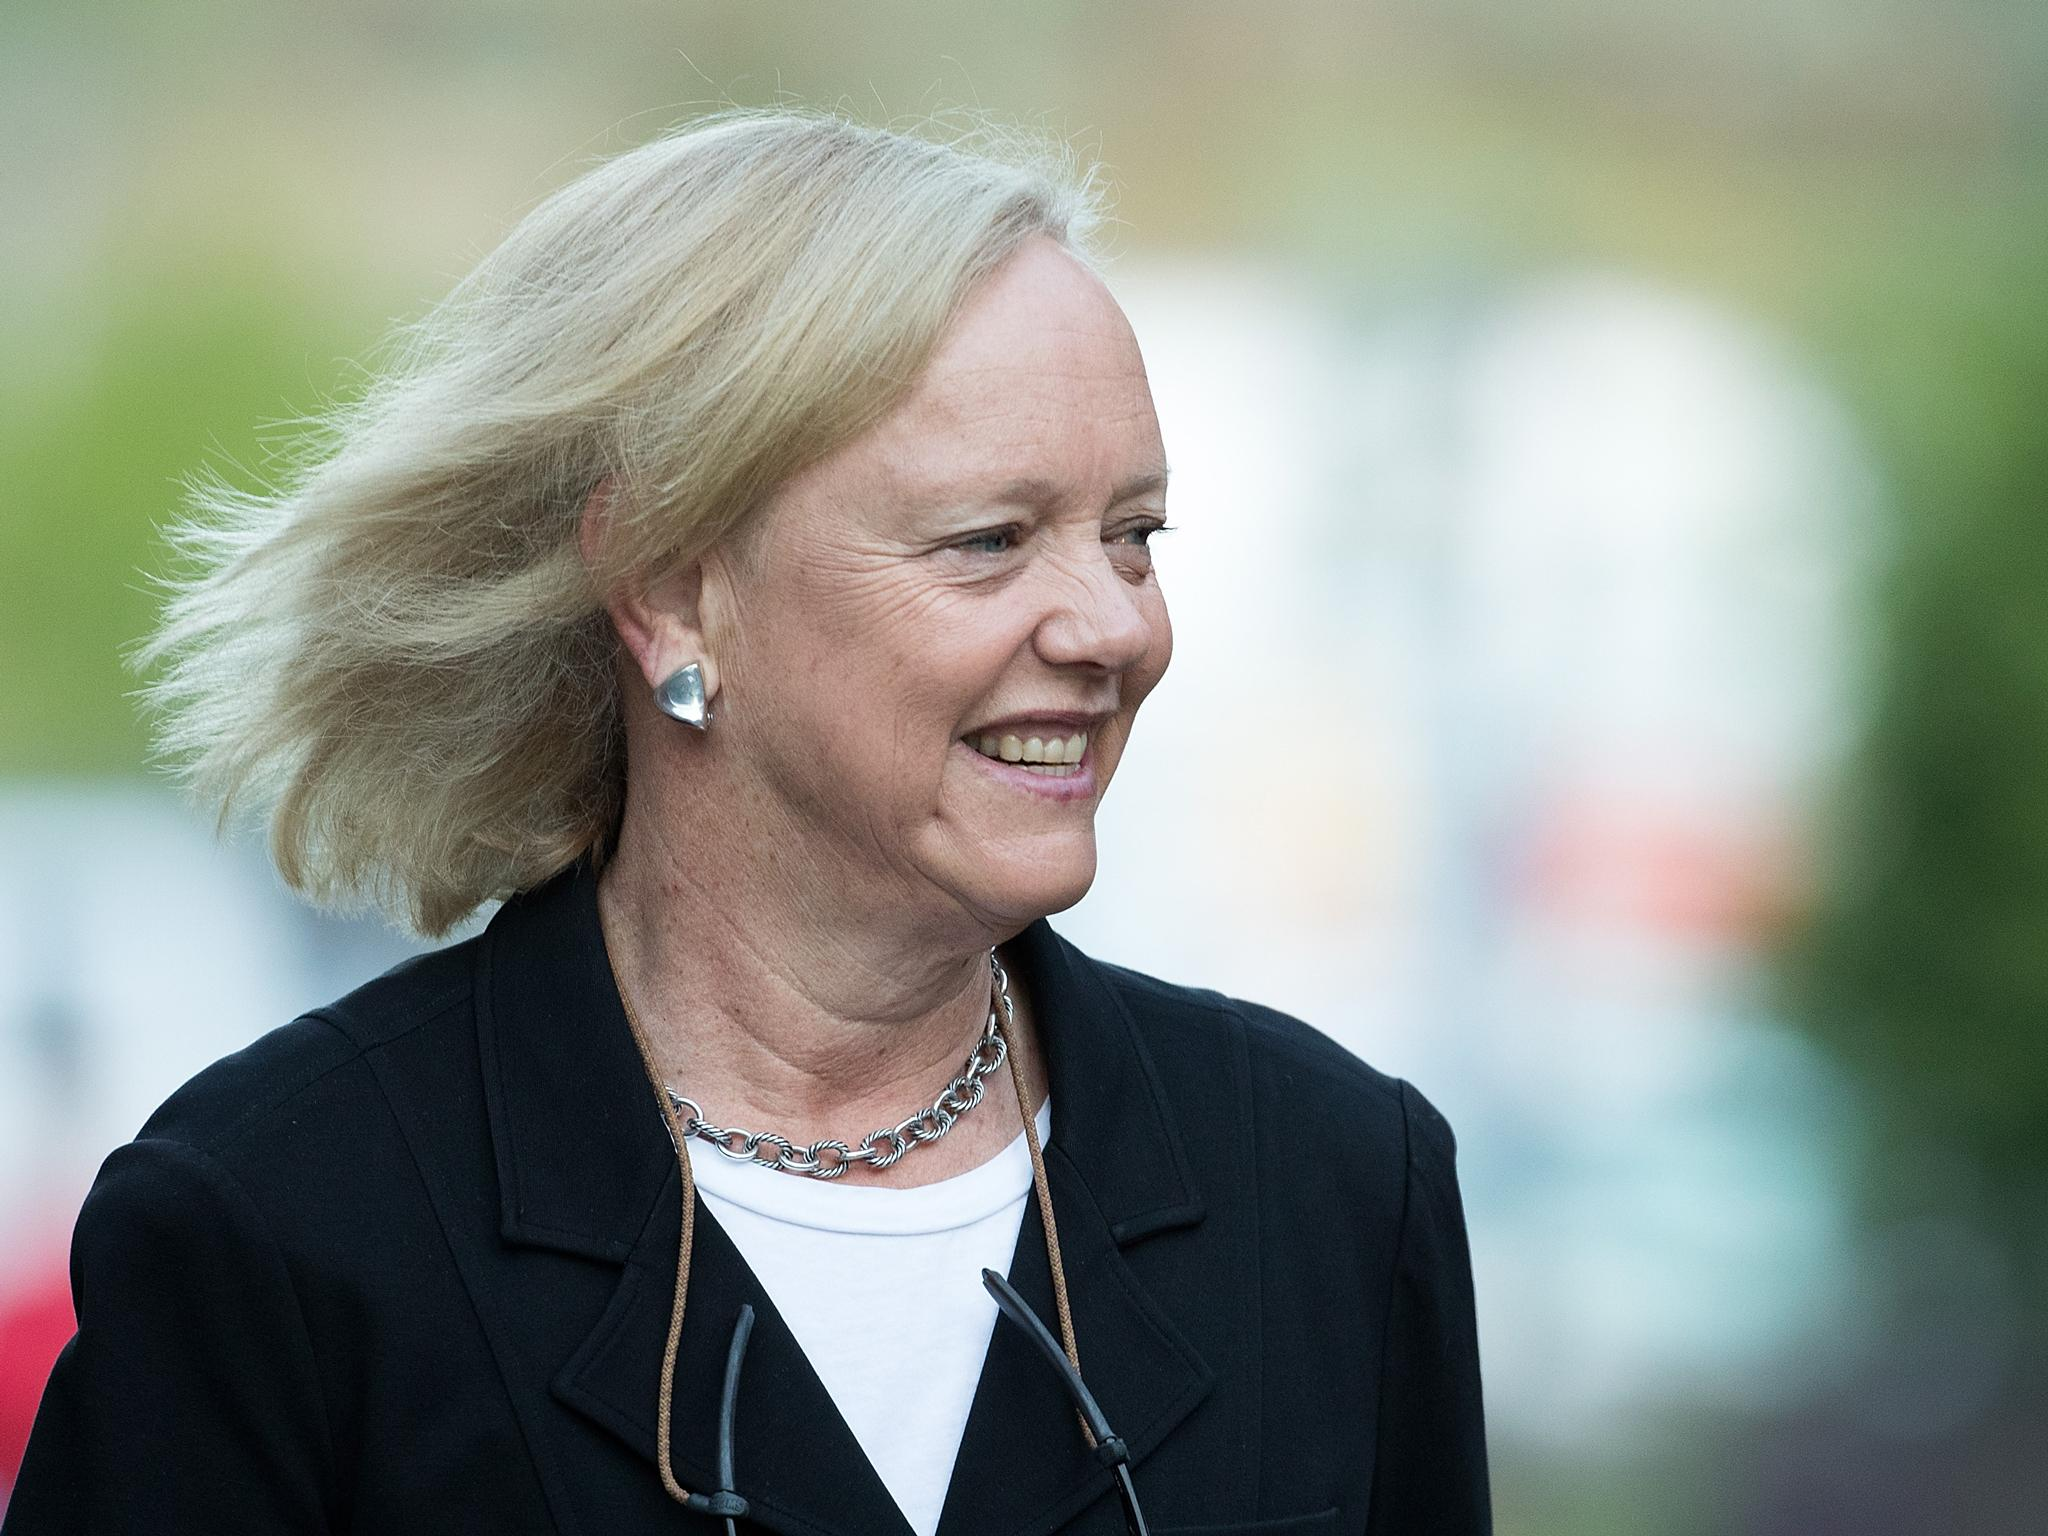 meg whitman and hewlett packard Meg whitman, the former ebay and hewlett packard ceo who was the republican nominee for california governor eight years ago, has crossed the aisle to endorse democrat antonio villaraigosa for the .